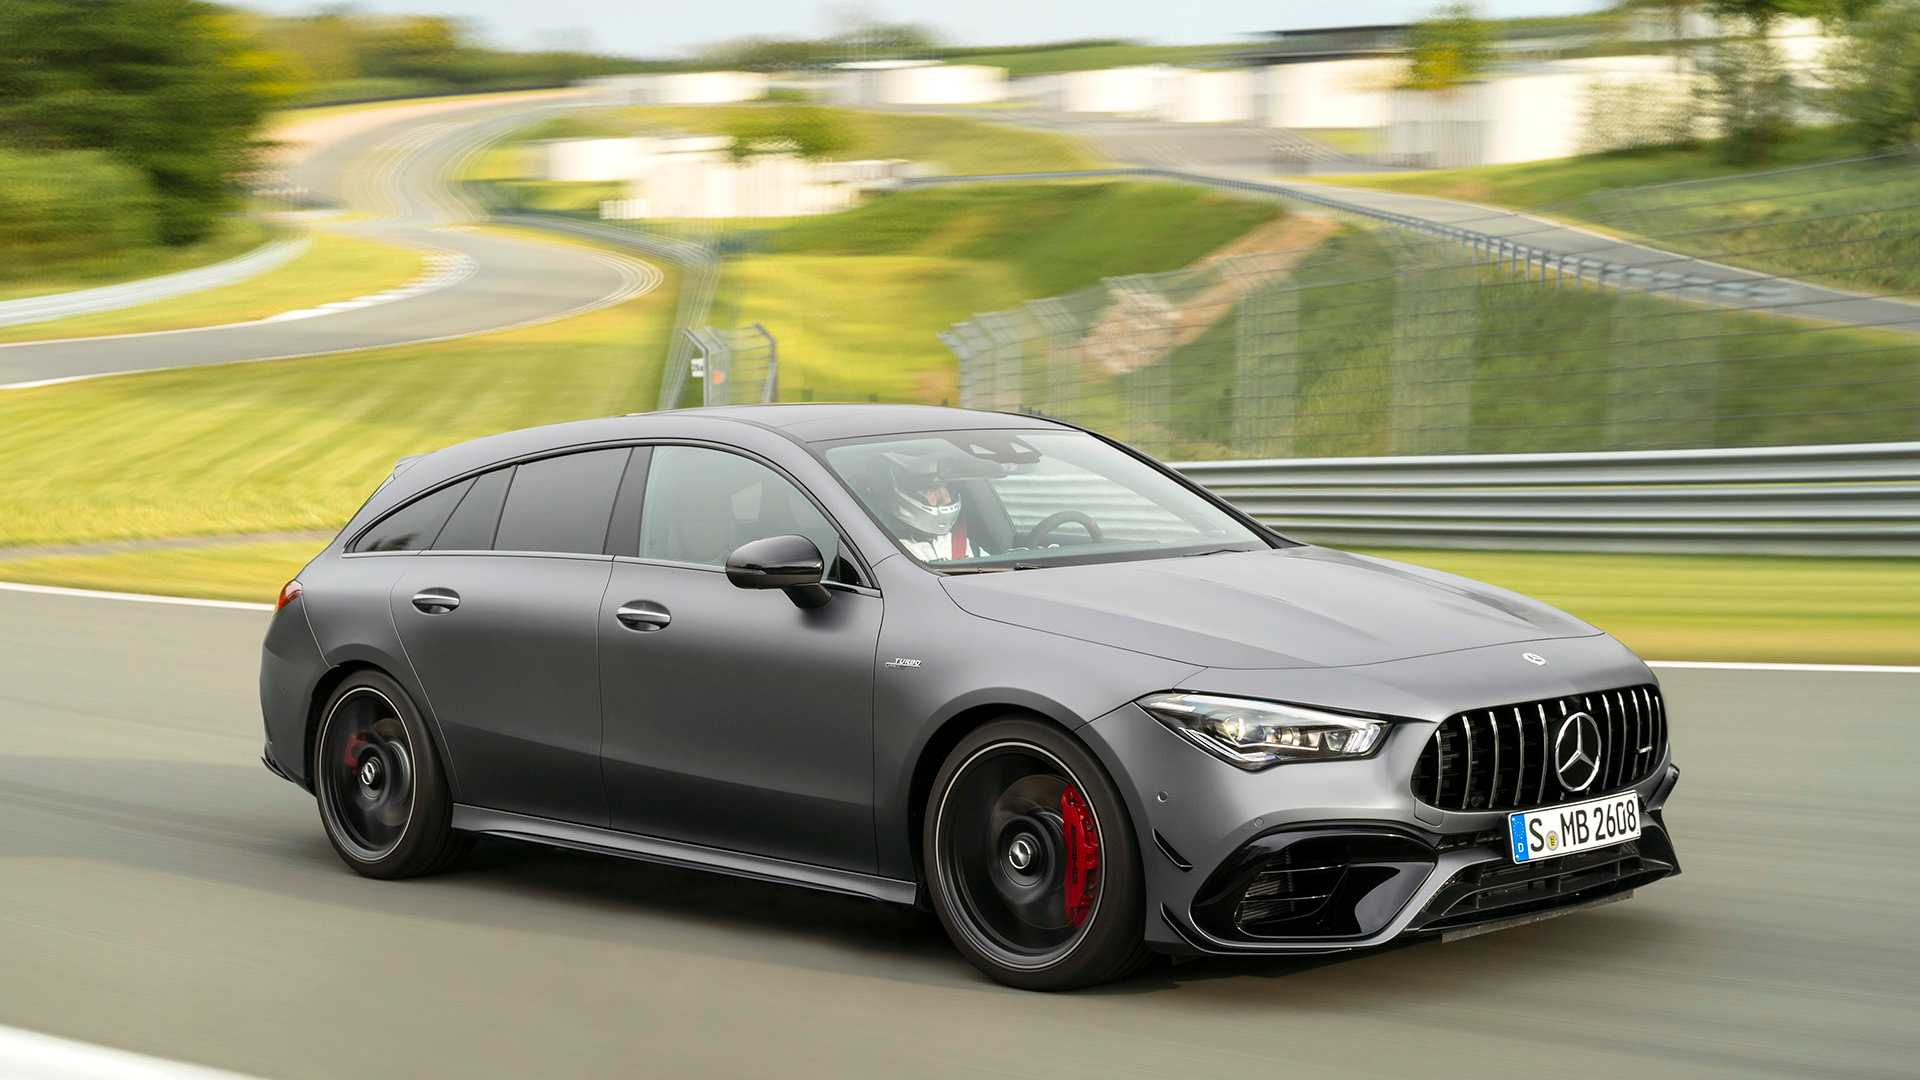 2020 Mercedes-AMG CLA 45 S 4MATIC+ Shooting Brake Front Three-Quarter Wallpapers (10)